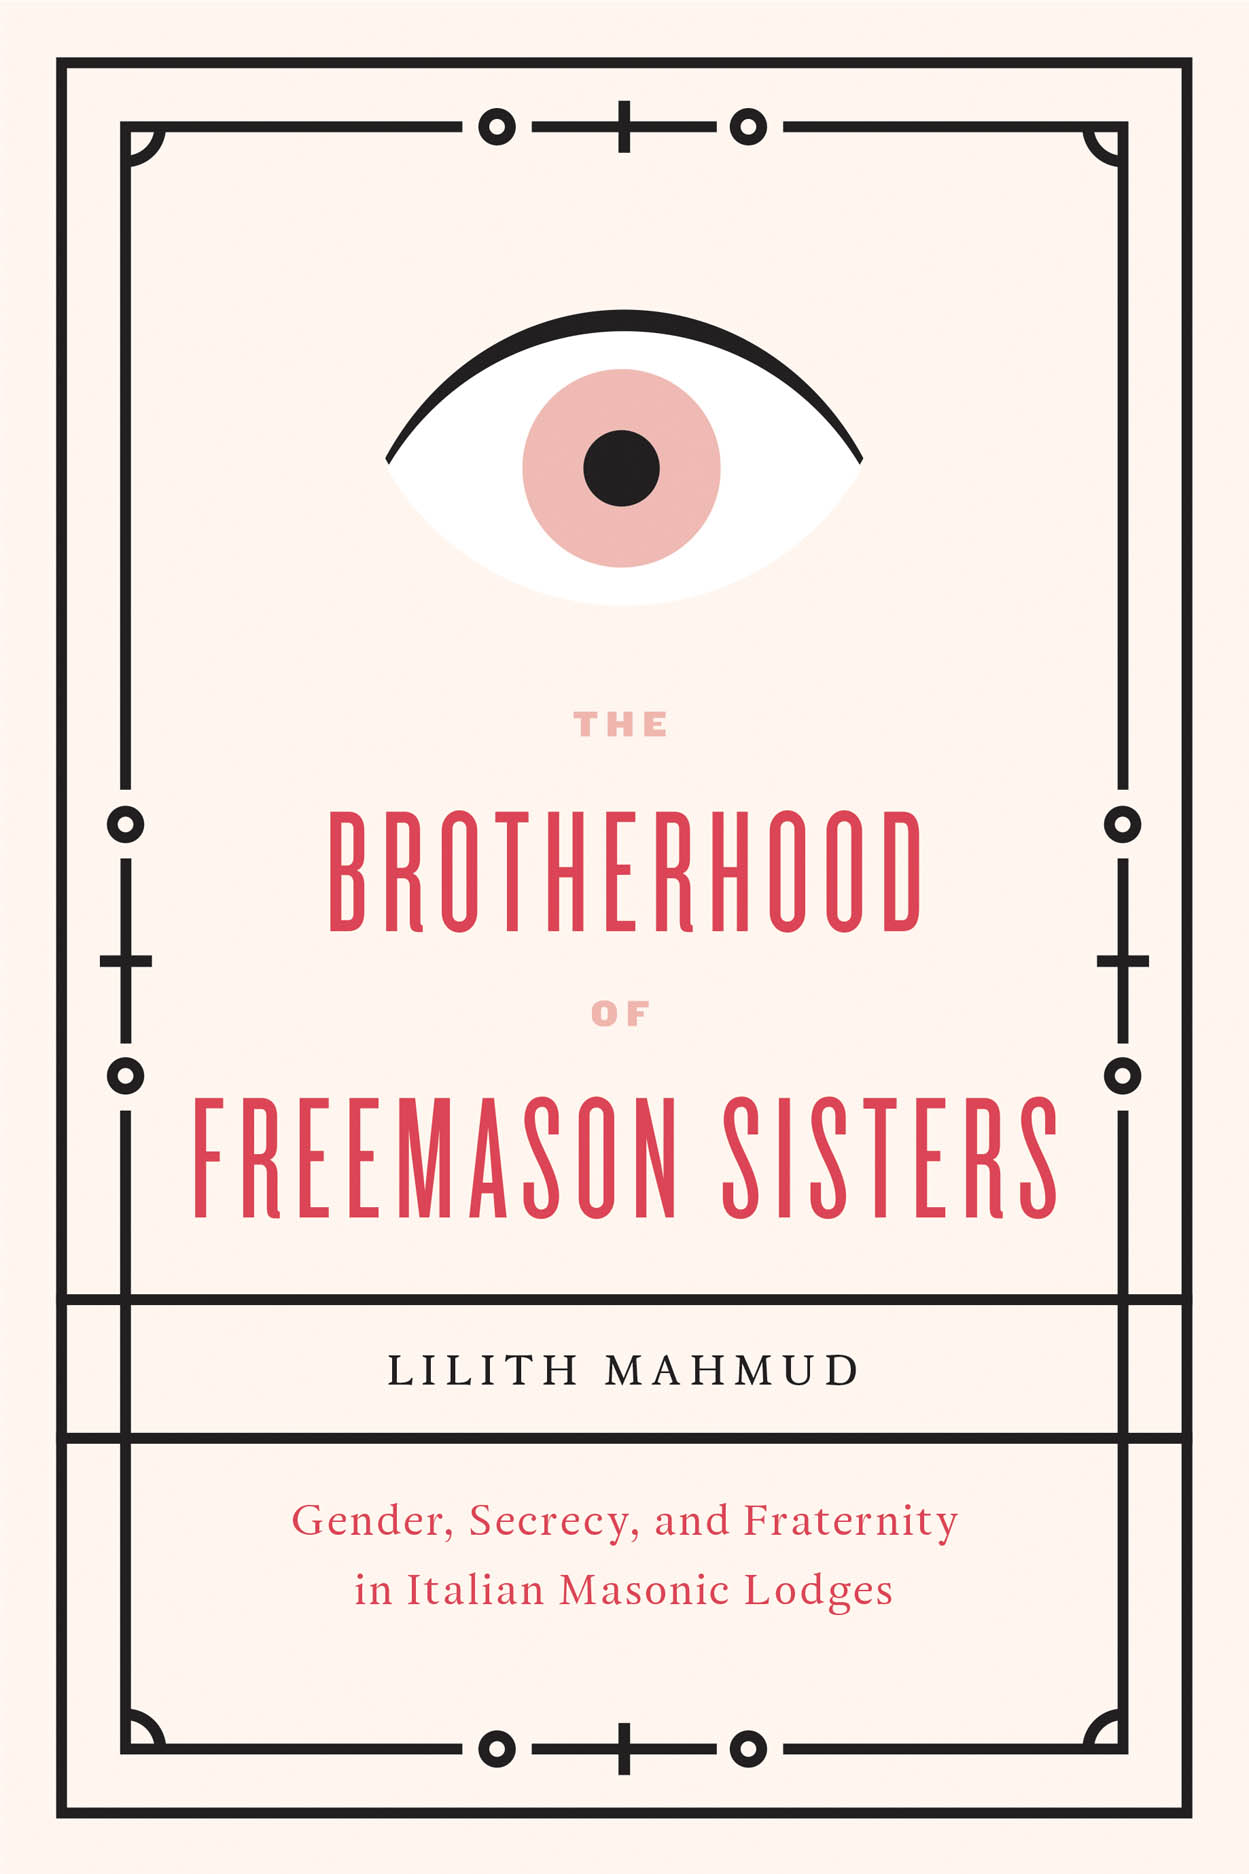 The Brotherhood of Freemason Sisters